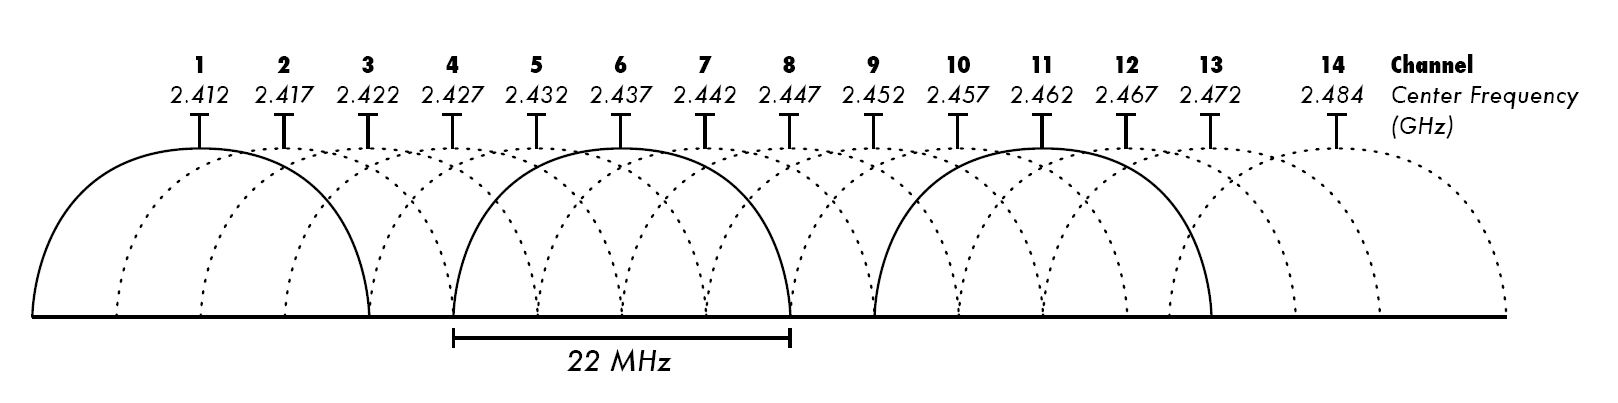 2.4_GHz_Wi-Fi_channels_(802.11b,g_WLAN).png